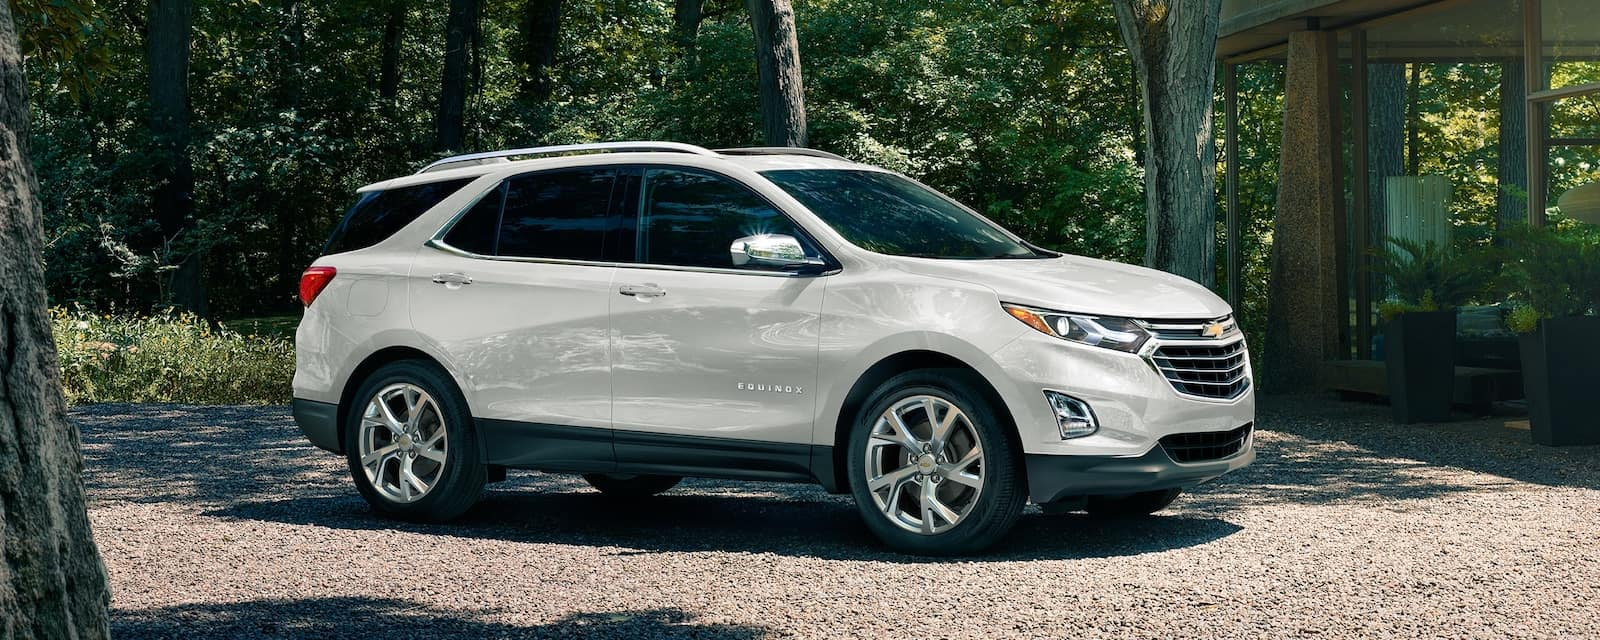 Chevrolet Equinox Dealership